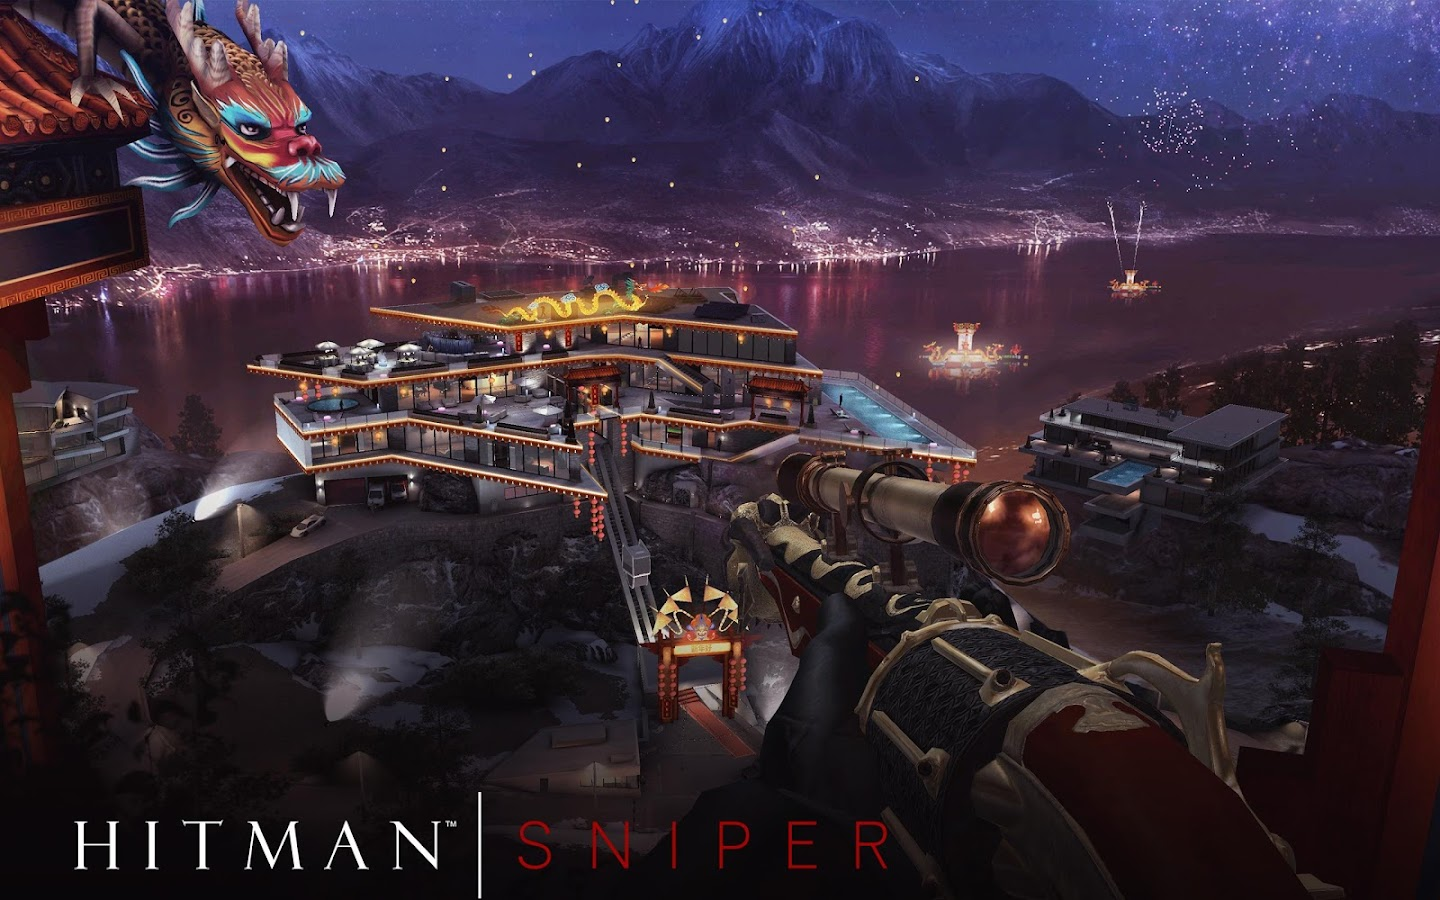 Hitman Sniper Screenshot 14